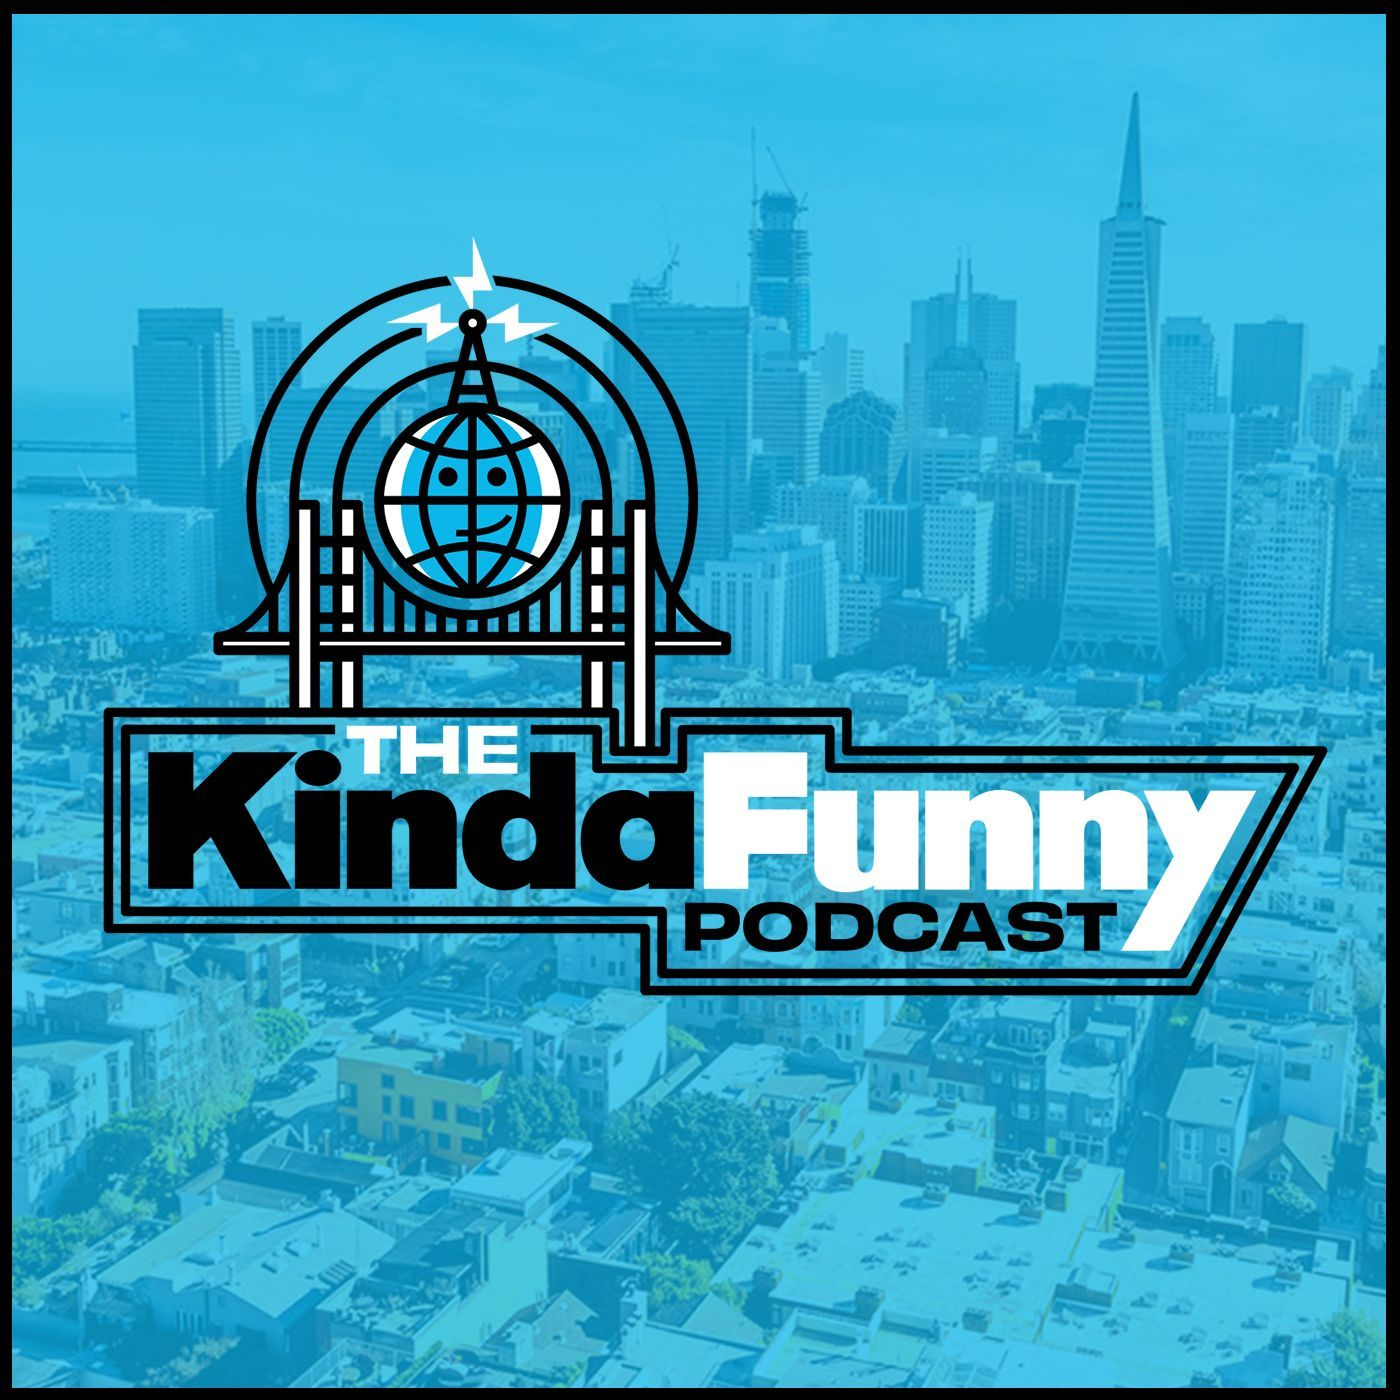 The Kinda Funny Podcast podcast show image